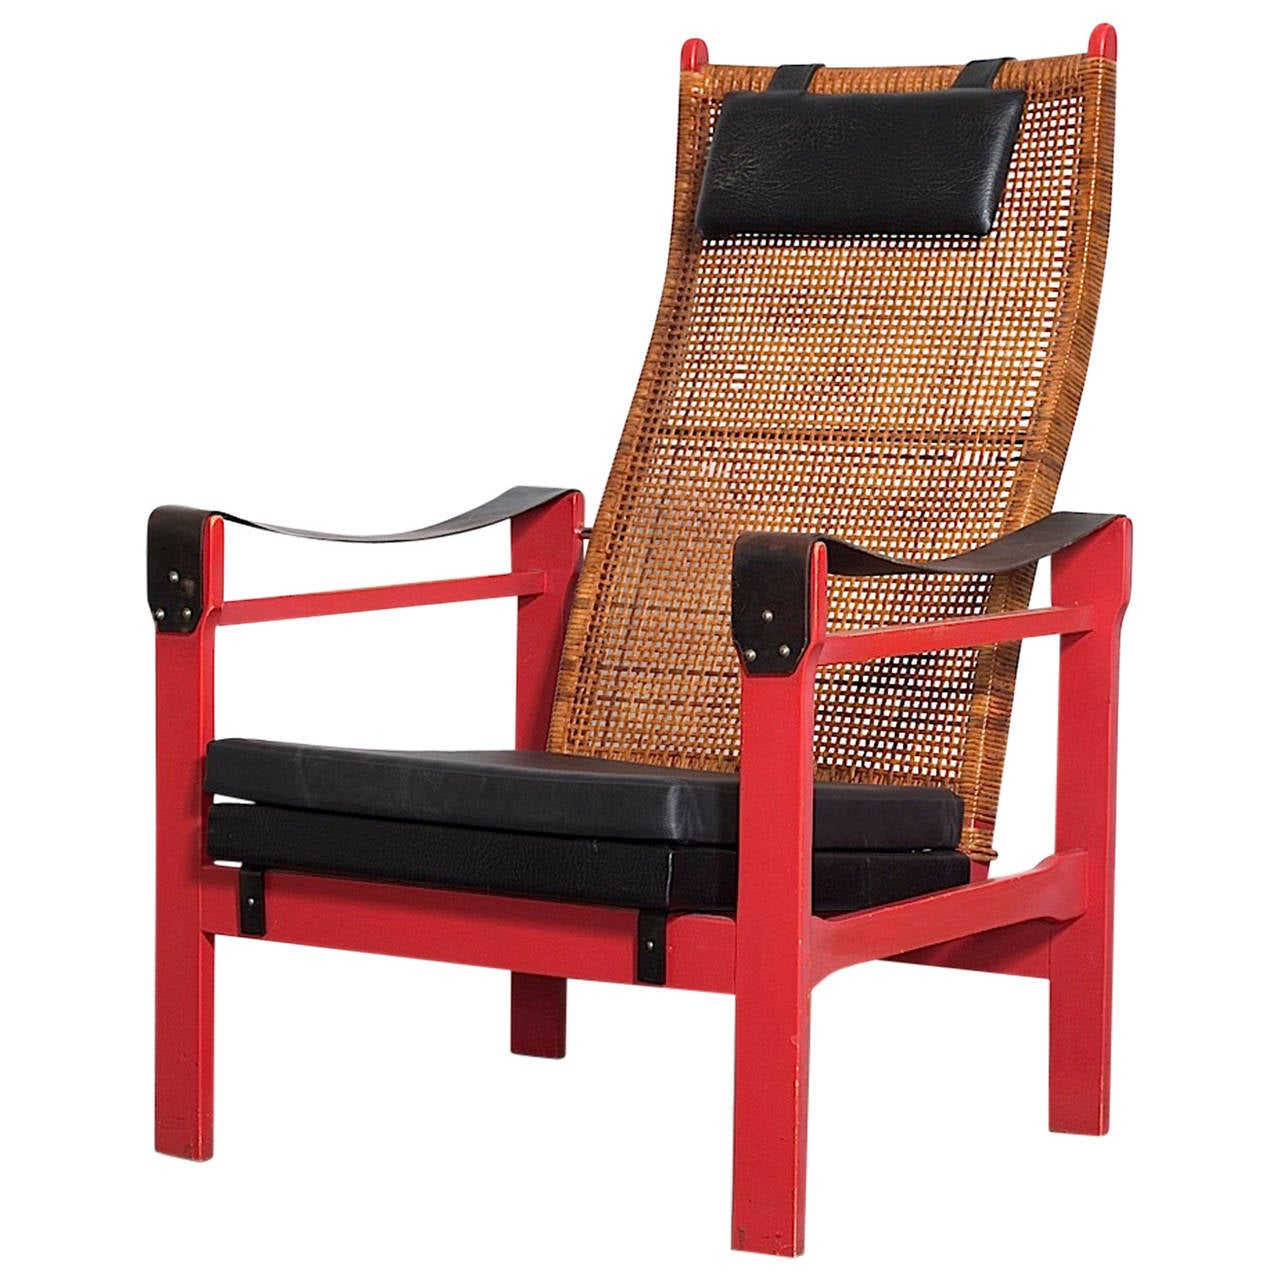 P J Muntendam Woven Rattan Lounge Chair with Leather